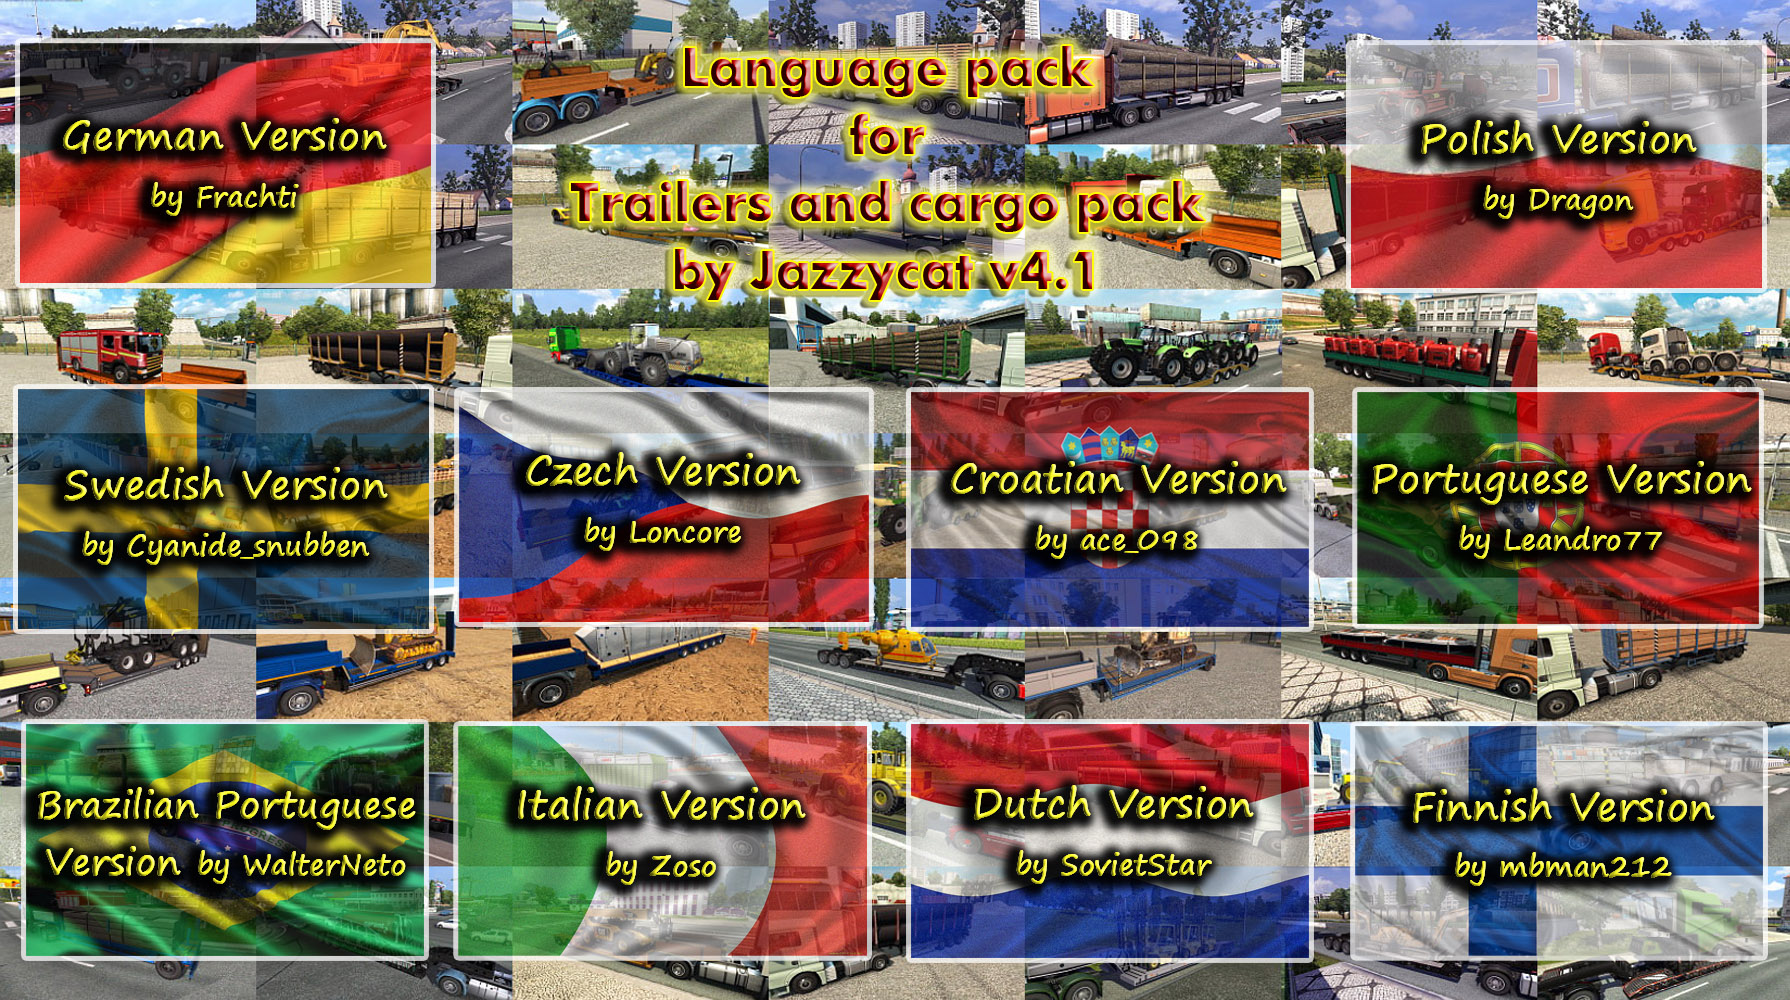 Fix and Language Pack (update) for Trailers and Cargo Pack by Jazzycat v 4.1